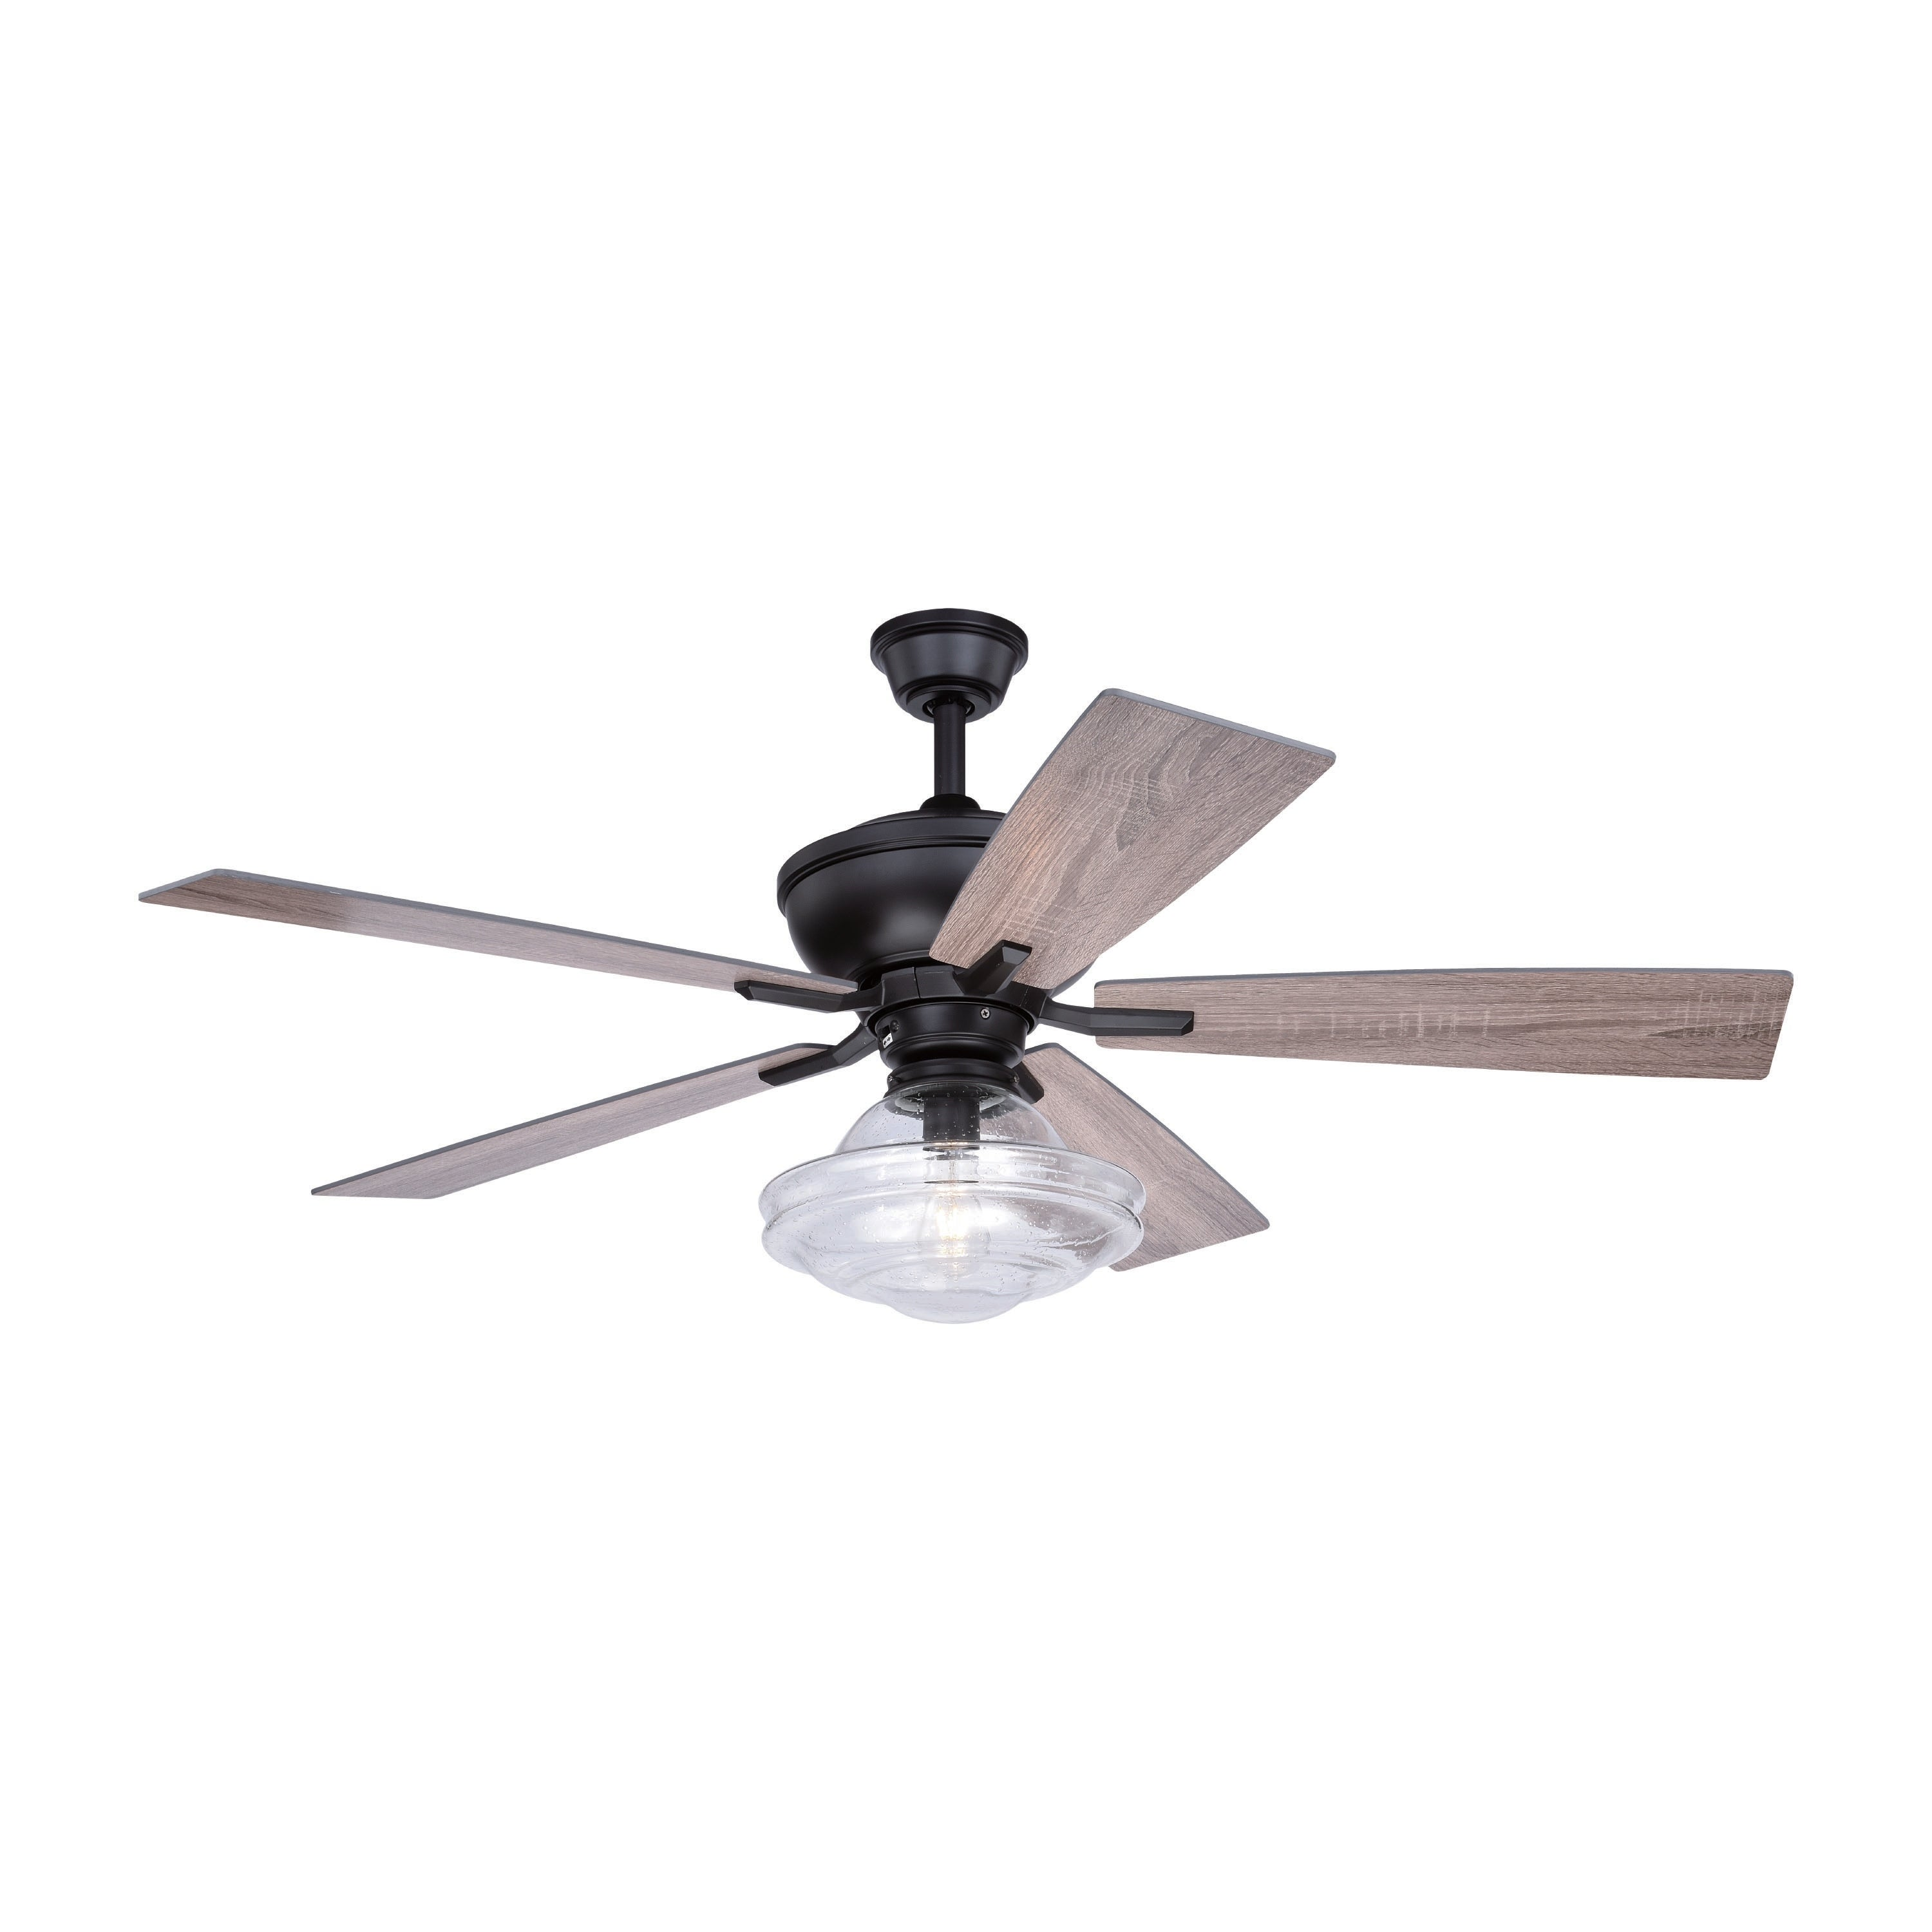 Huntley 52 In Bronze Farmhouse Indoor Ceiling Fan With Schoolhouse Led Light Kit And Remote 52 In W X 21 7 In H X 52 In D Overstock 28377804